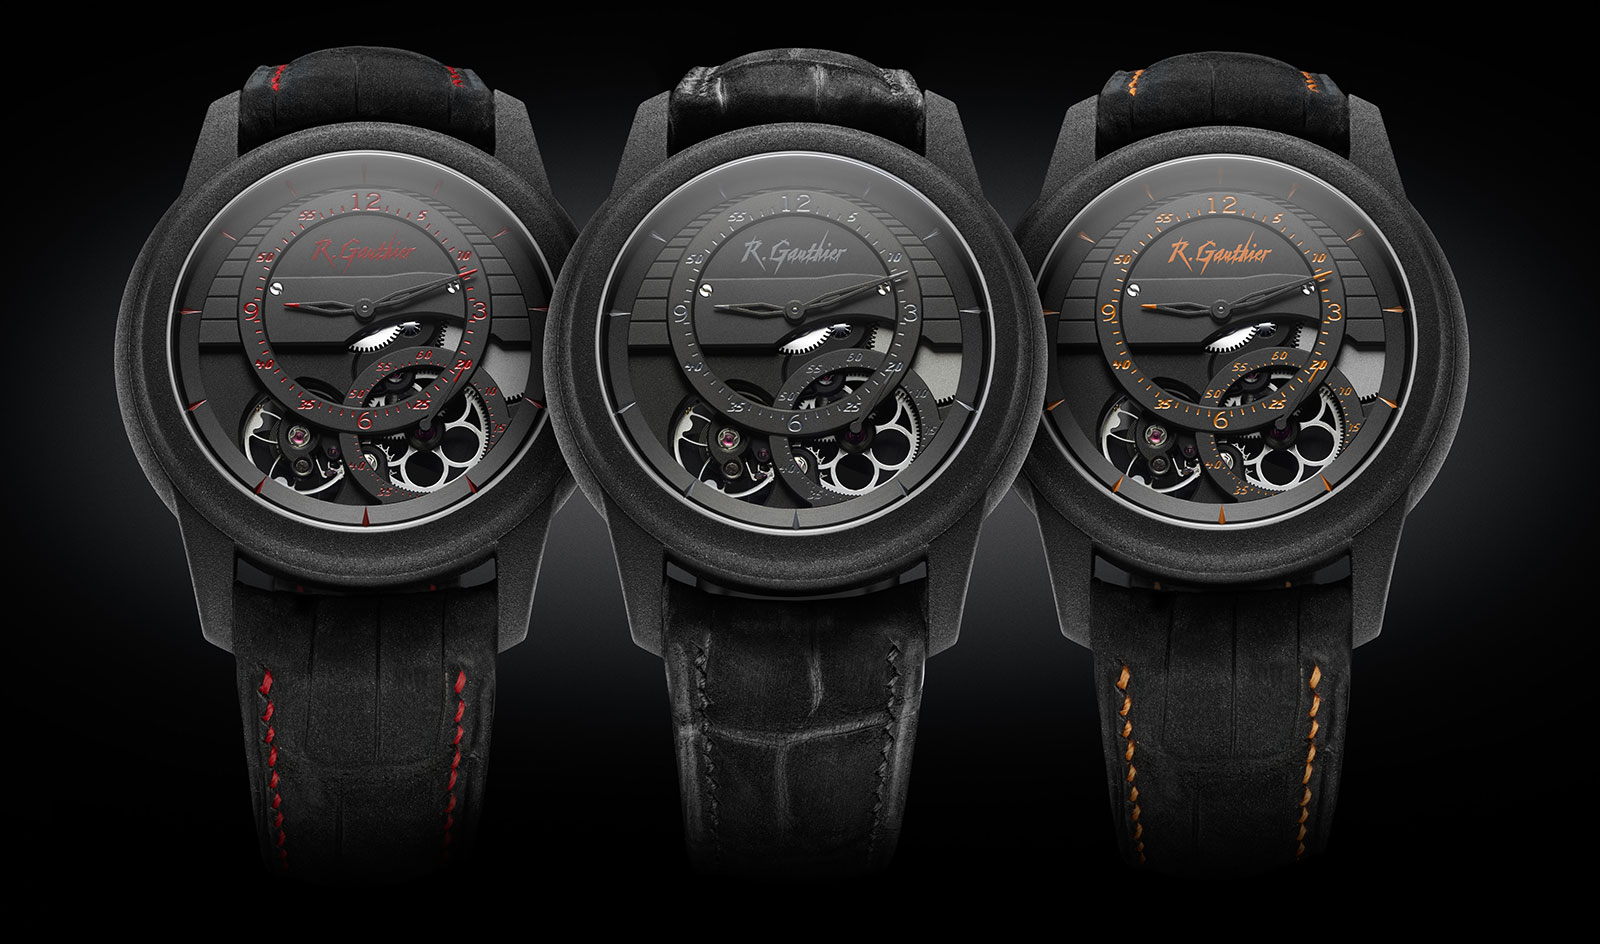 Romain Gauthier HMS Enraged 2